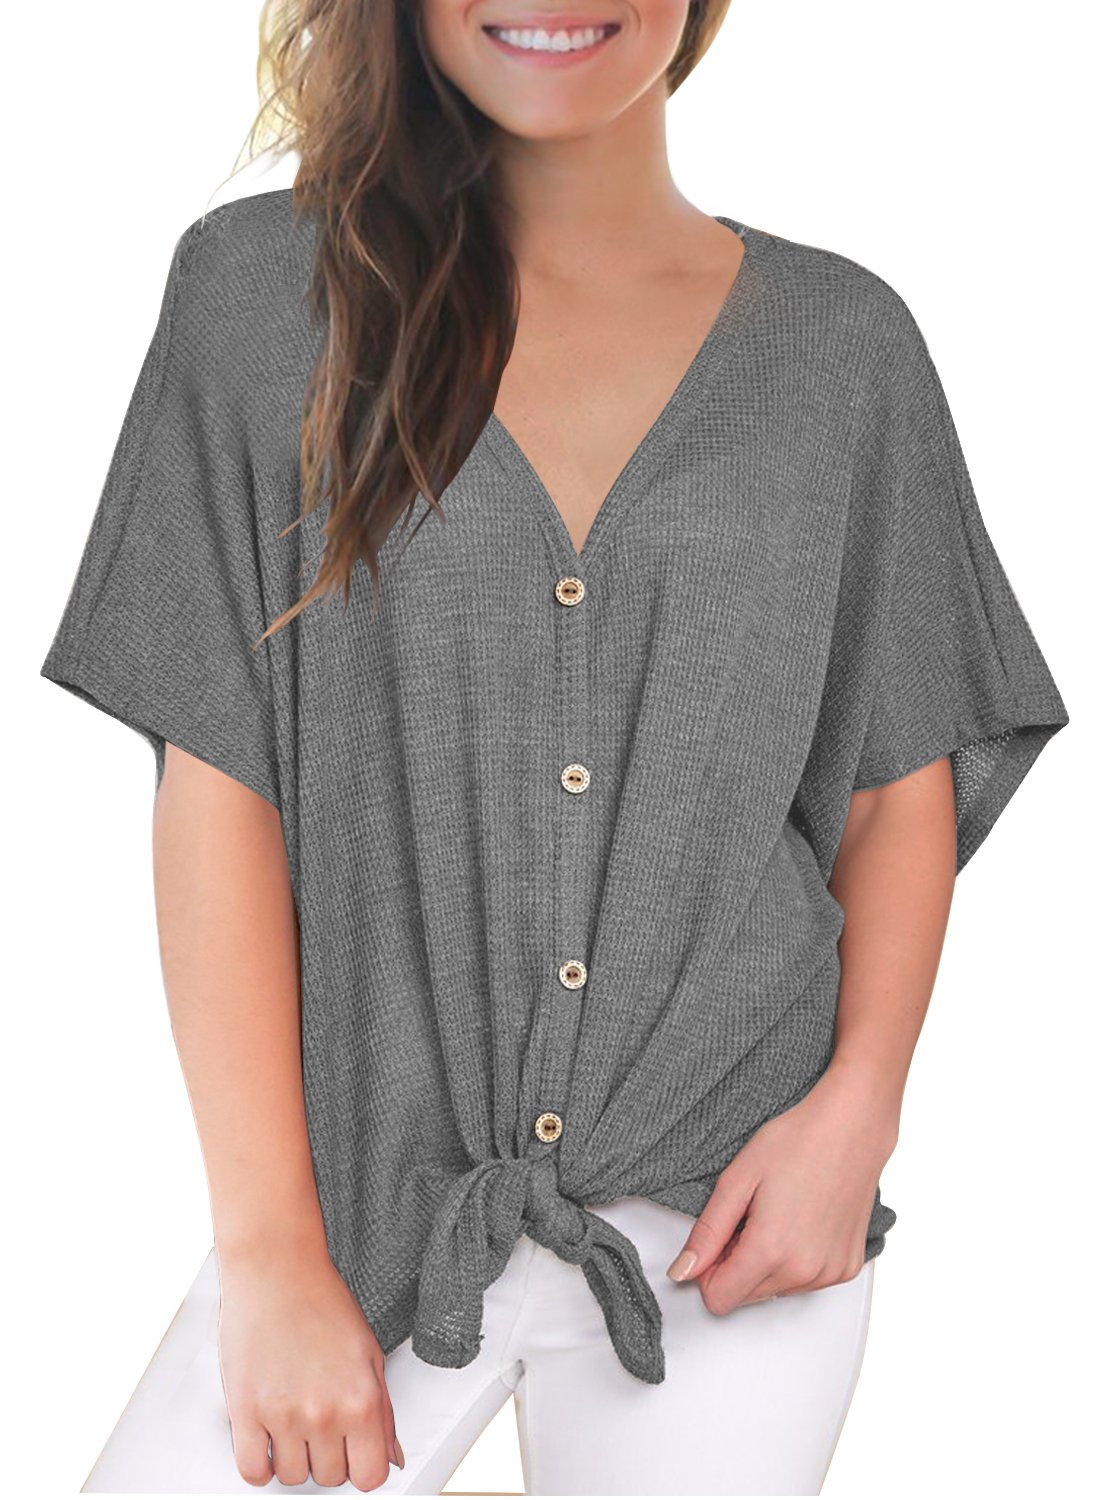 MIHOLL Womens Loose Blouse Short Sleeve V Neck Button Down T Shirts Tie Front Knot Casual Tops (Small, P- Dark Grey)